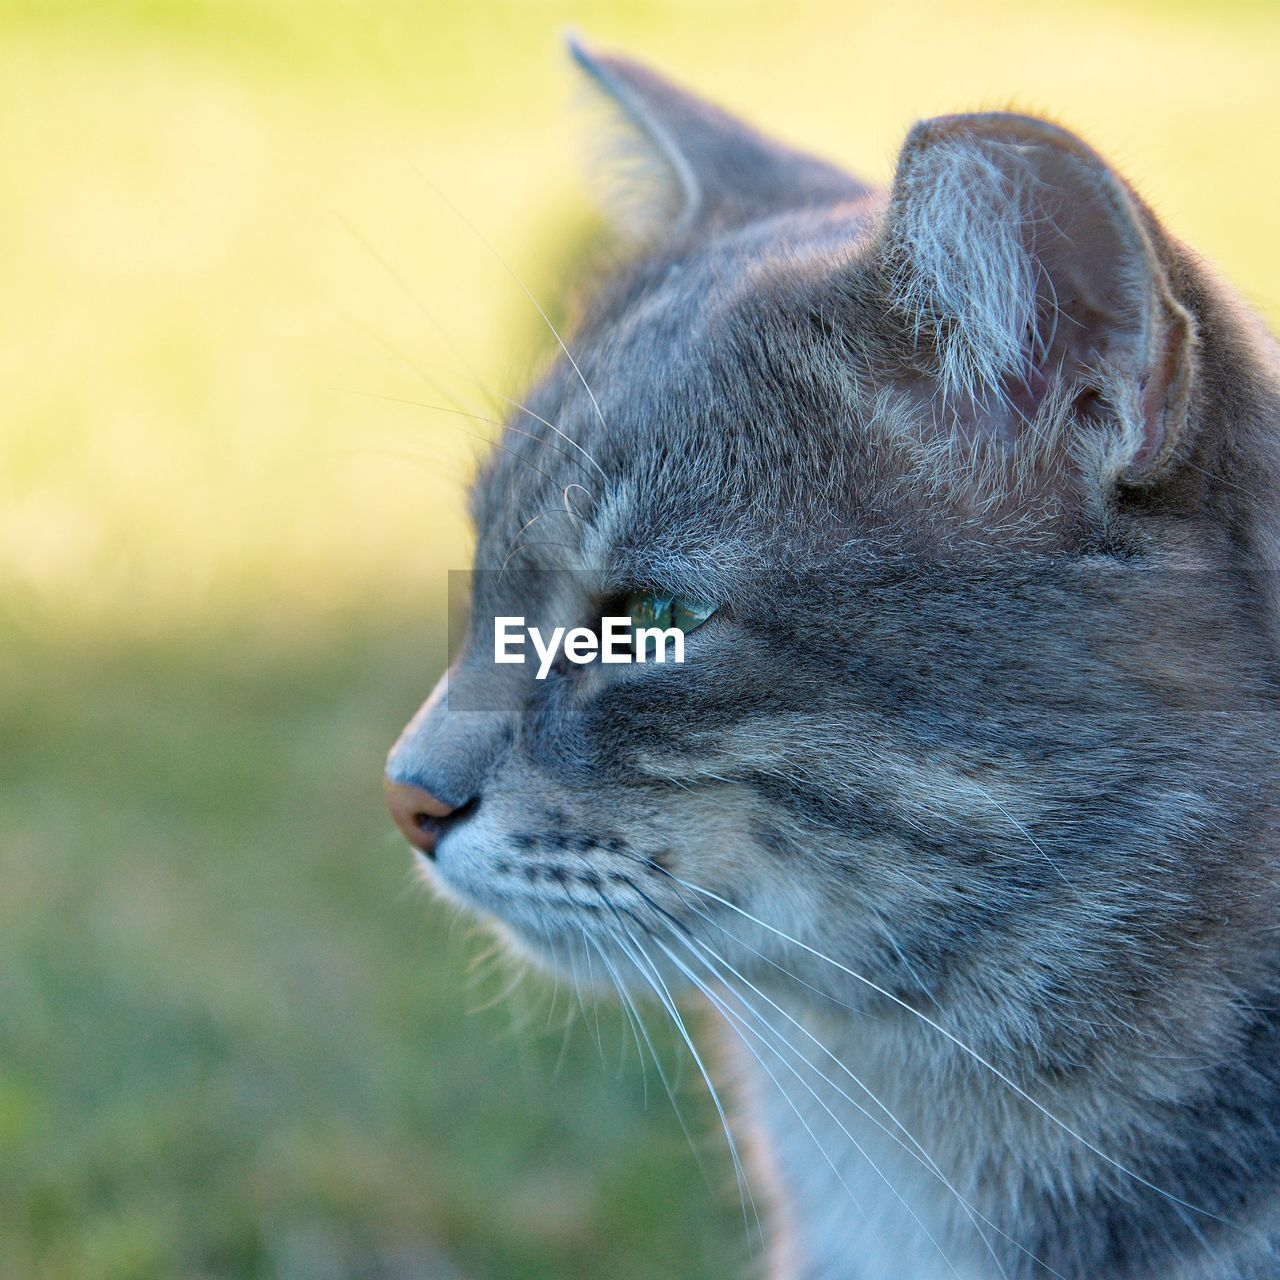 one animal, animal themes, animal, mammal, pets, domestic, cat, domestic animals, feline, close-up, domestic cat, vertebrate, looking, looking away, animal body part, whisker, focus on foreground, animal head, no people, day, profile view, animal eye, animal nose, snout